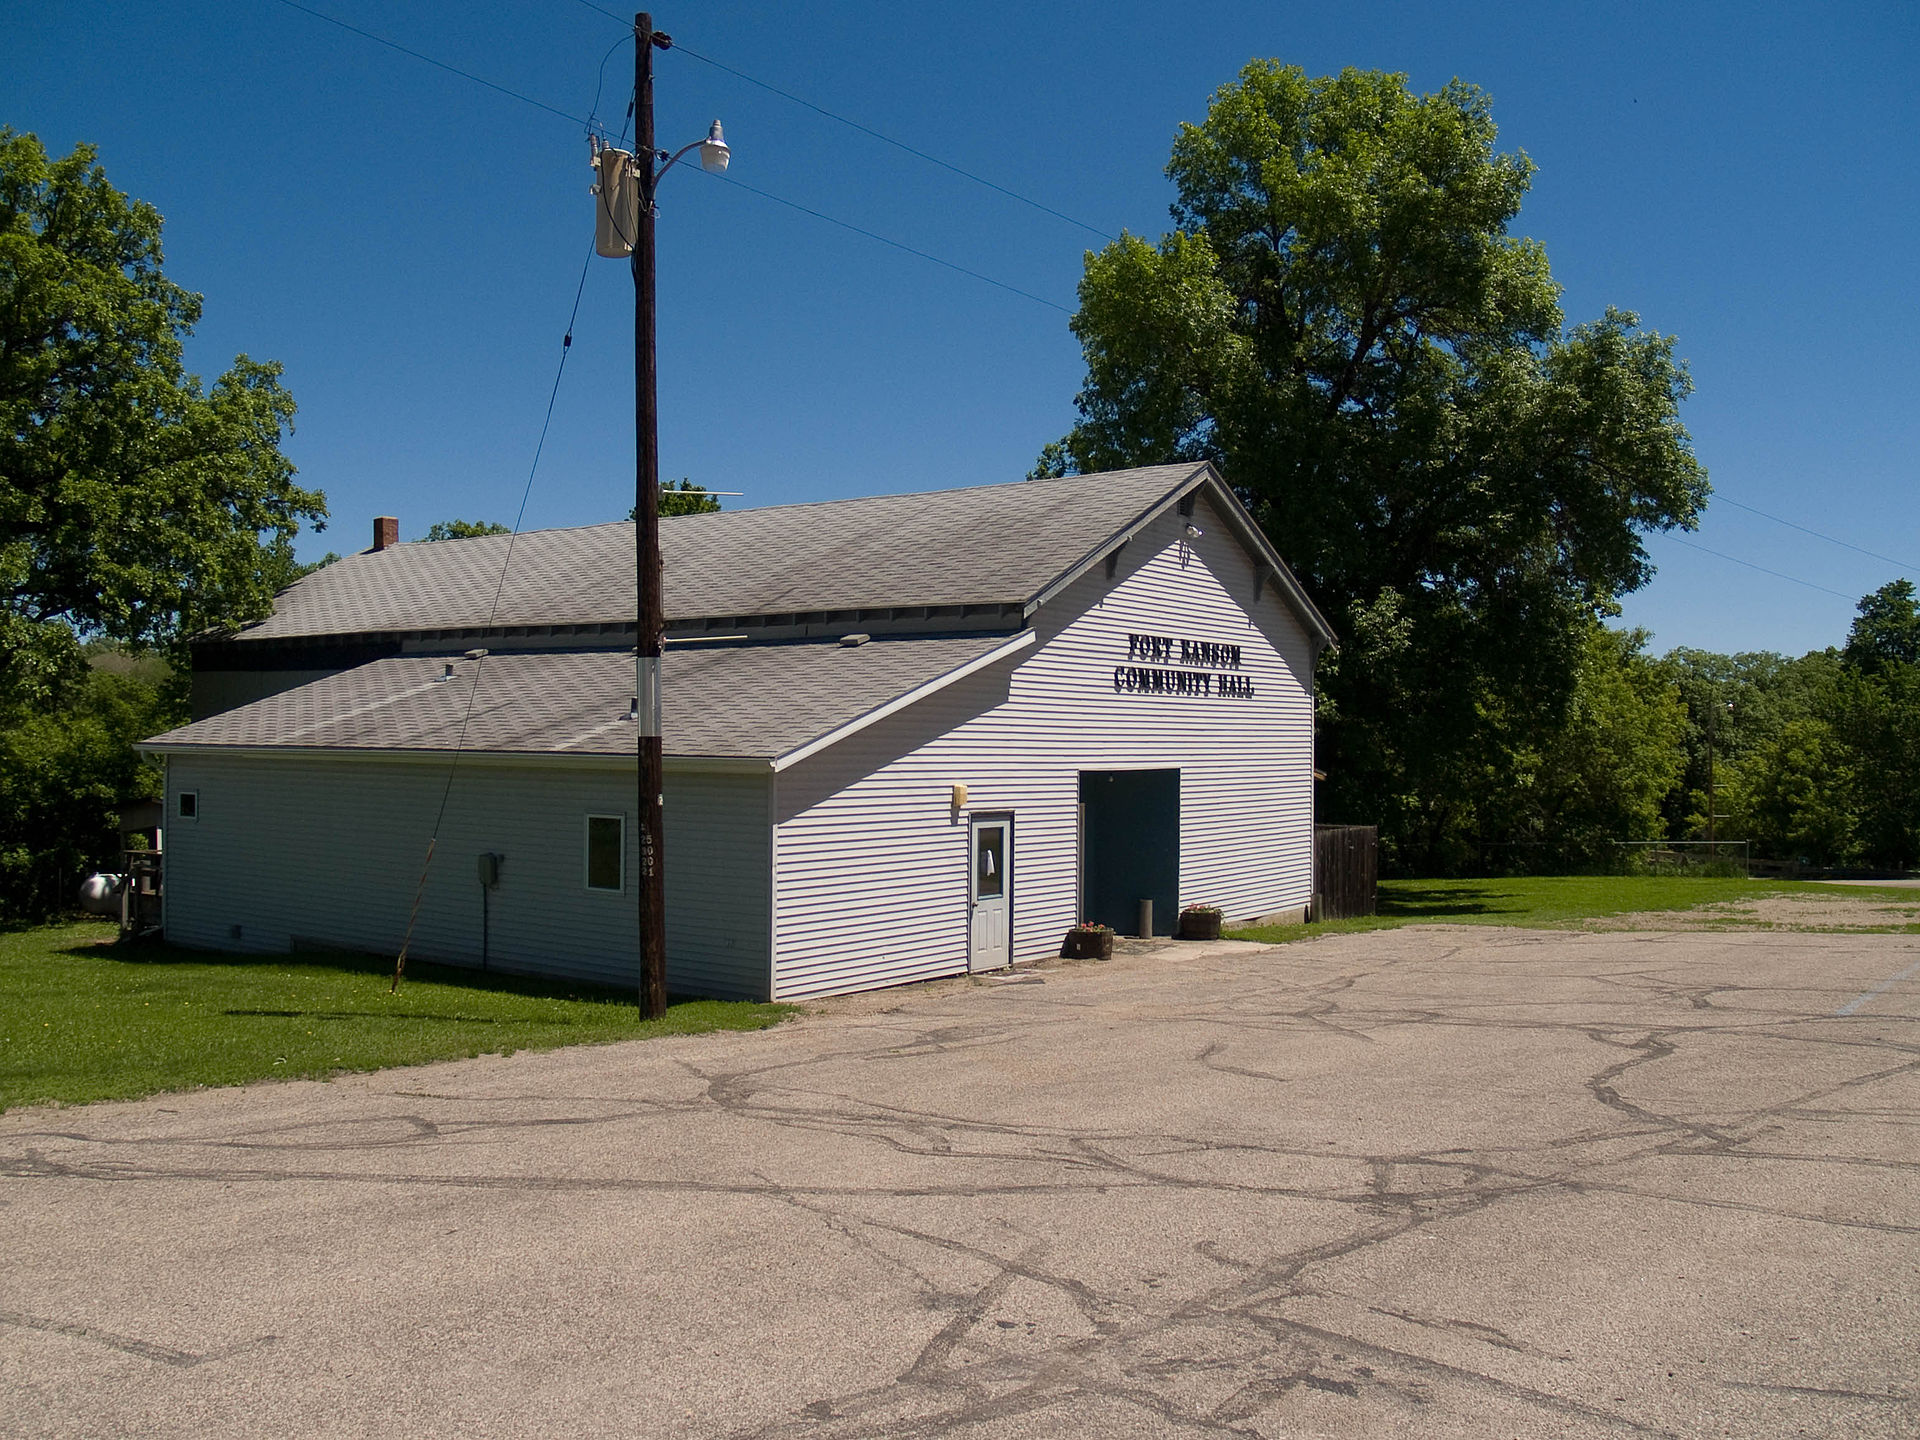 Fort Ransom Nd Craft Show